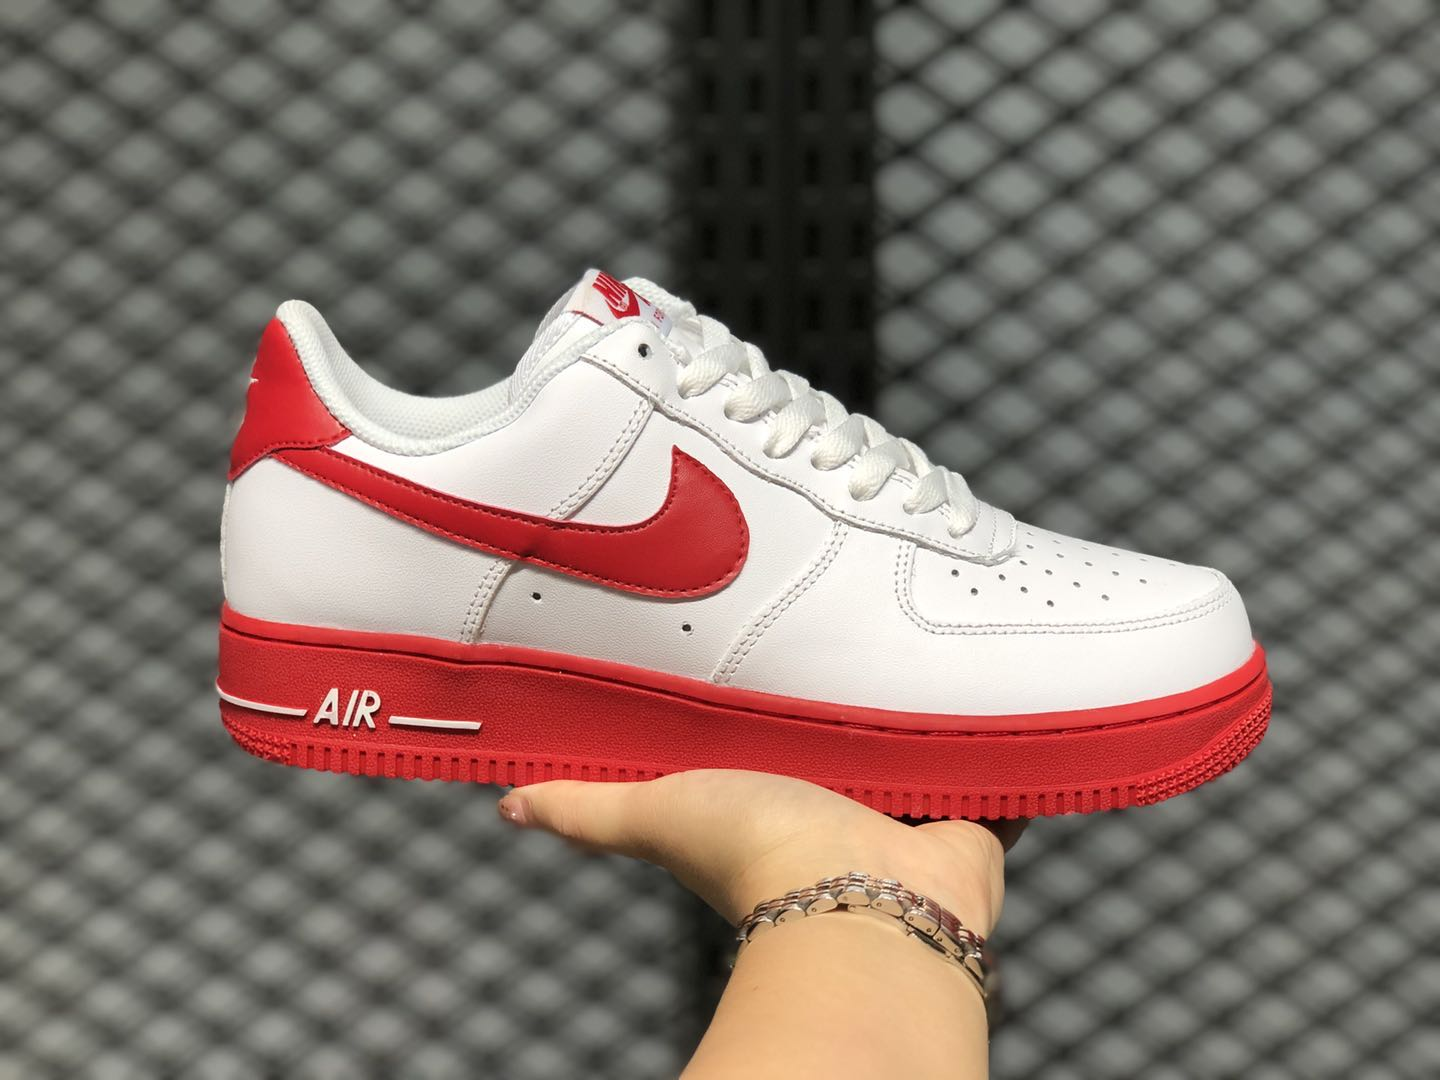 Nike Air Force 1 Low White/University Red-White On Sale CK7663-102